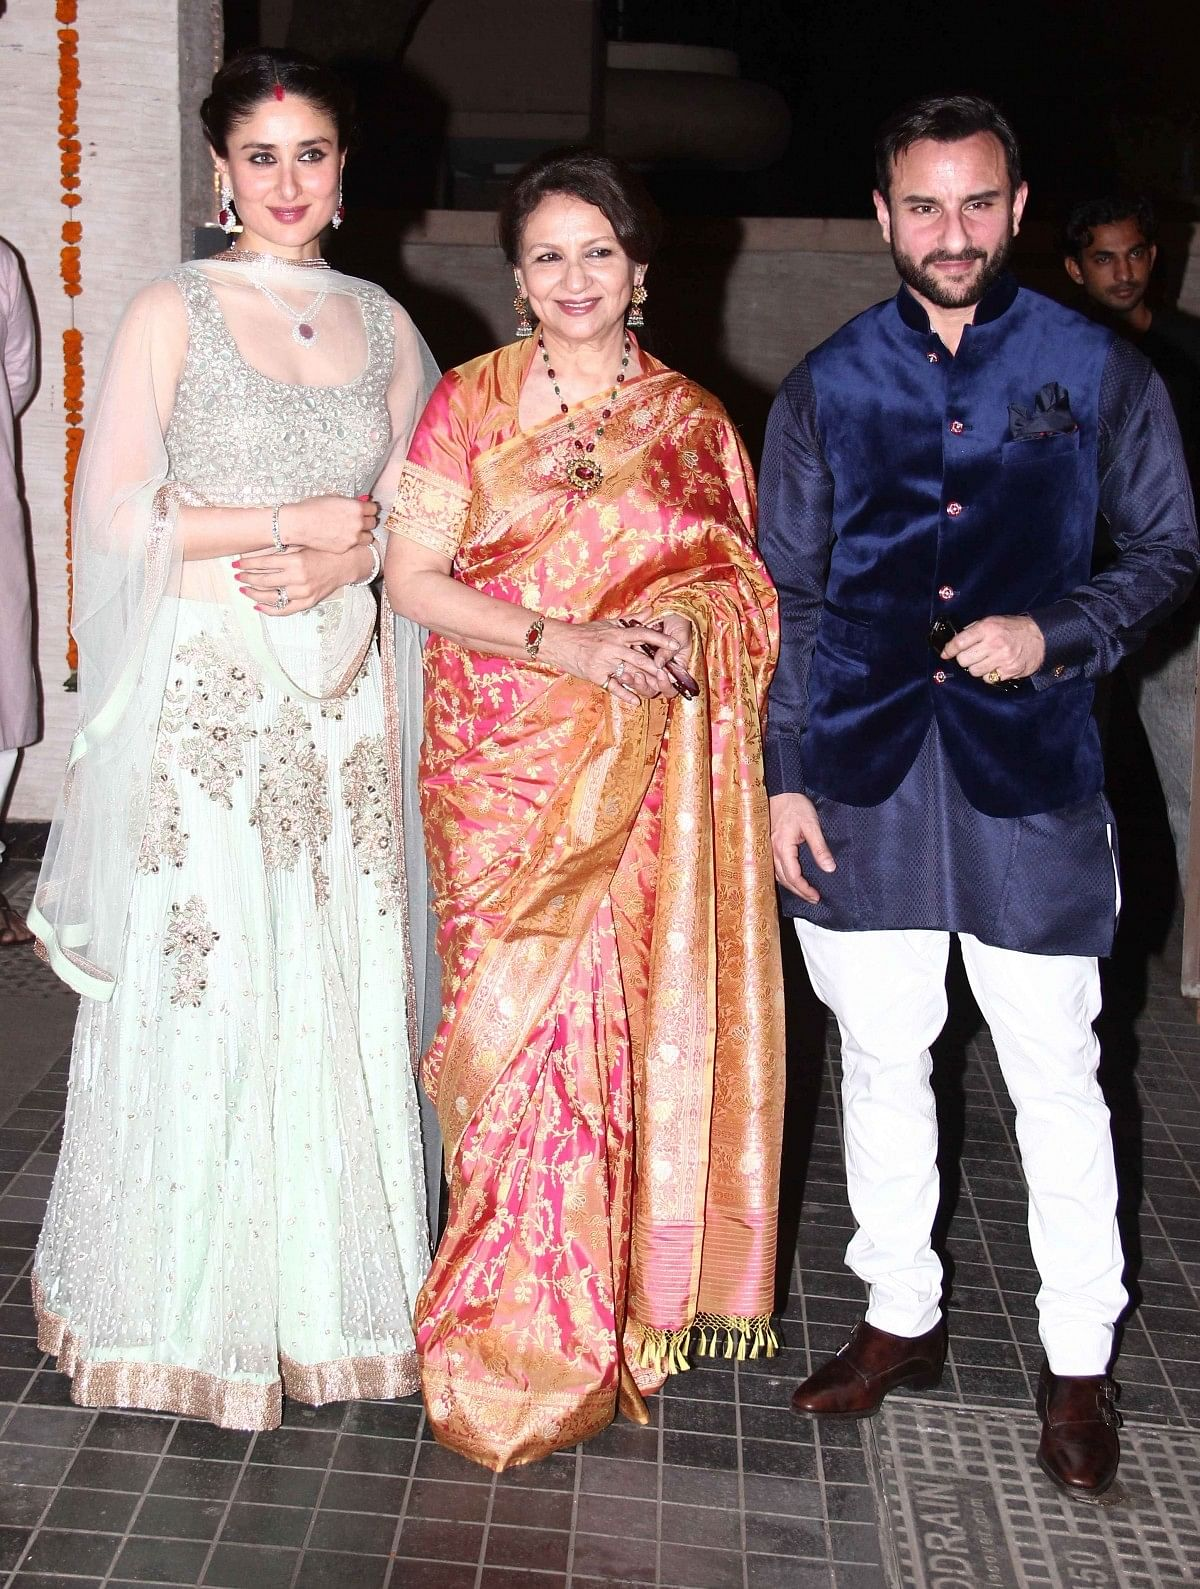 Kareena Kapoor Khan with her mother in law Sharmila Tagore and husband Saif Ali Khan (Photo: Yogen Shah)